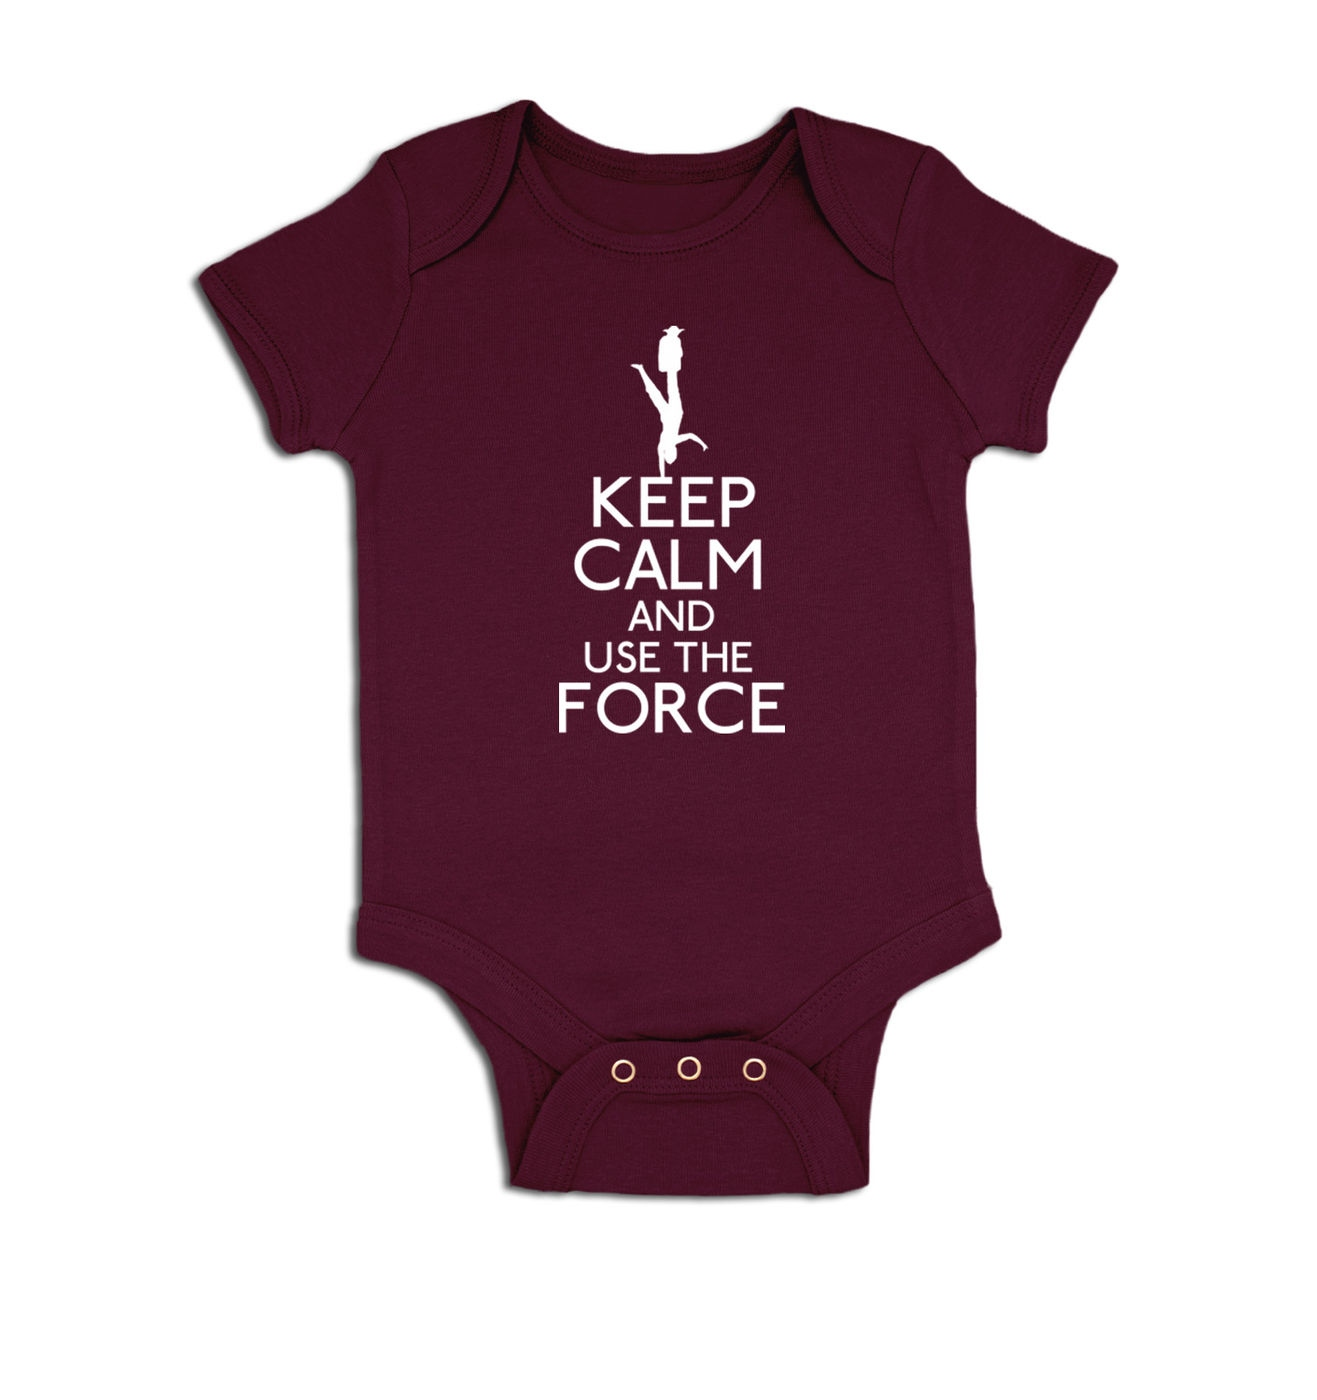 Keep Calm And Use The Force baby grow by Something Geeky